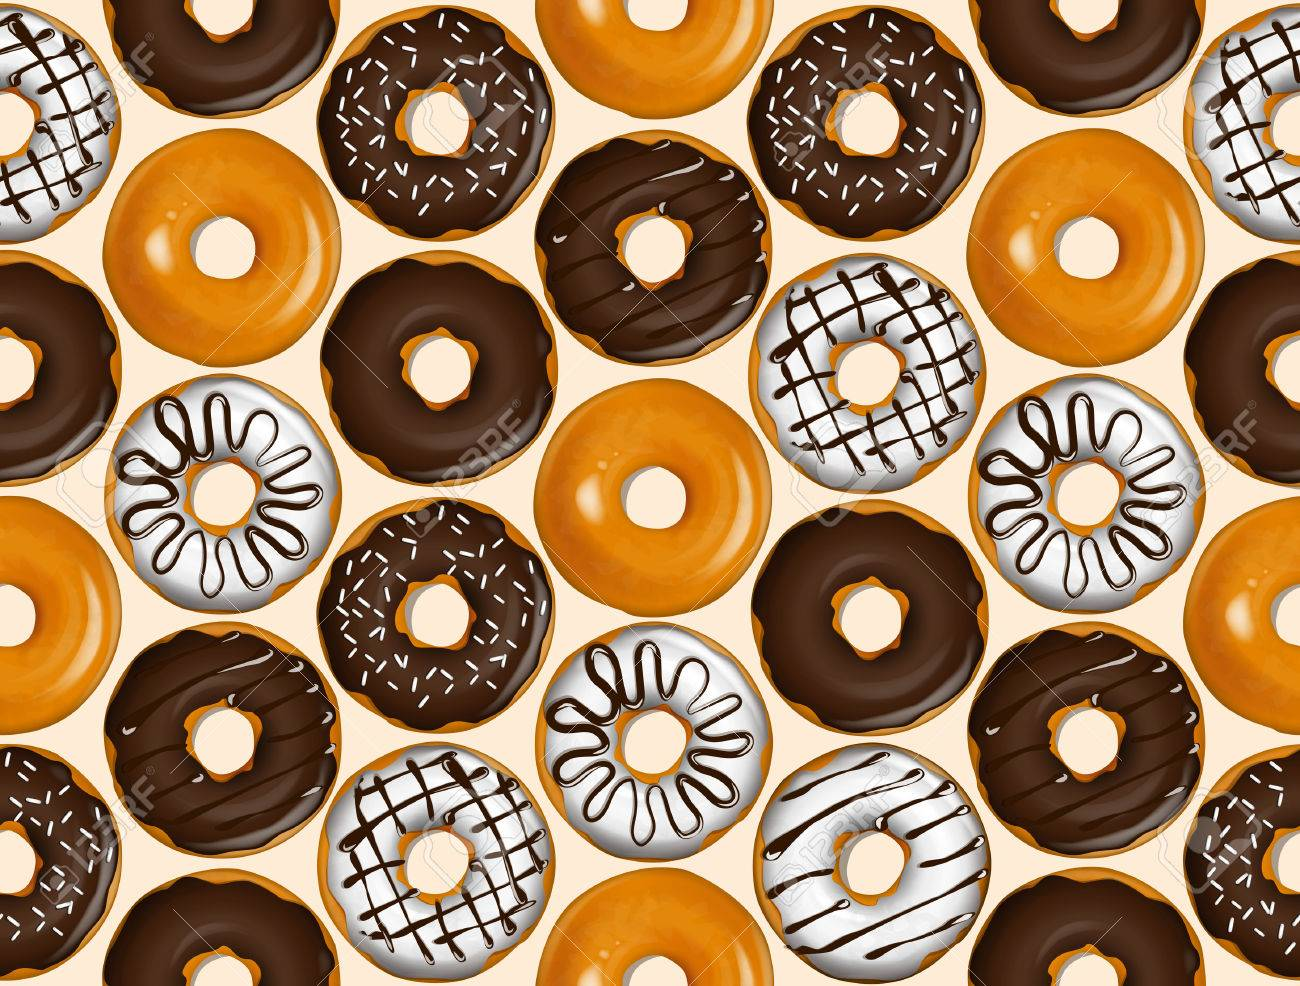 Seamless pattern of donuts. Donut pattern vector. - 45534872